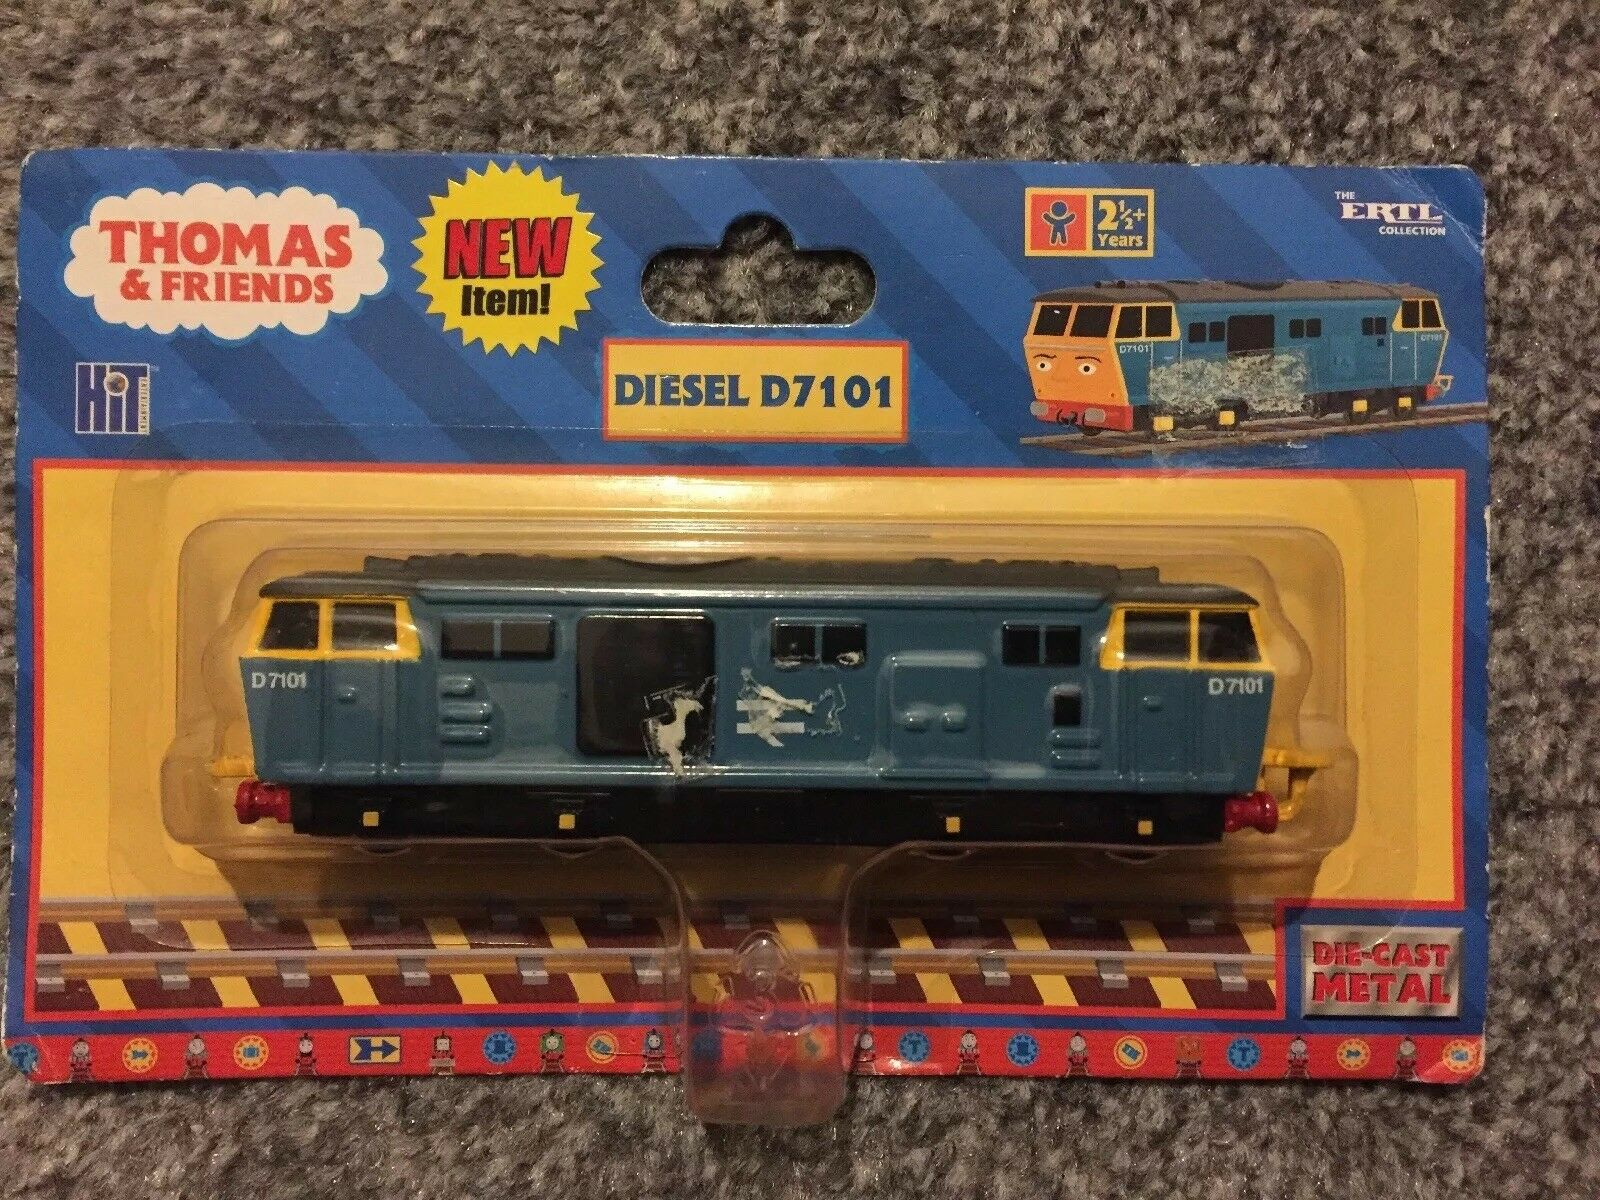 DIESEL D7101 ERTL - THOMAS & FRIENDS - BNIB VERY VERY VERY RARE 2 7546d1